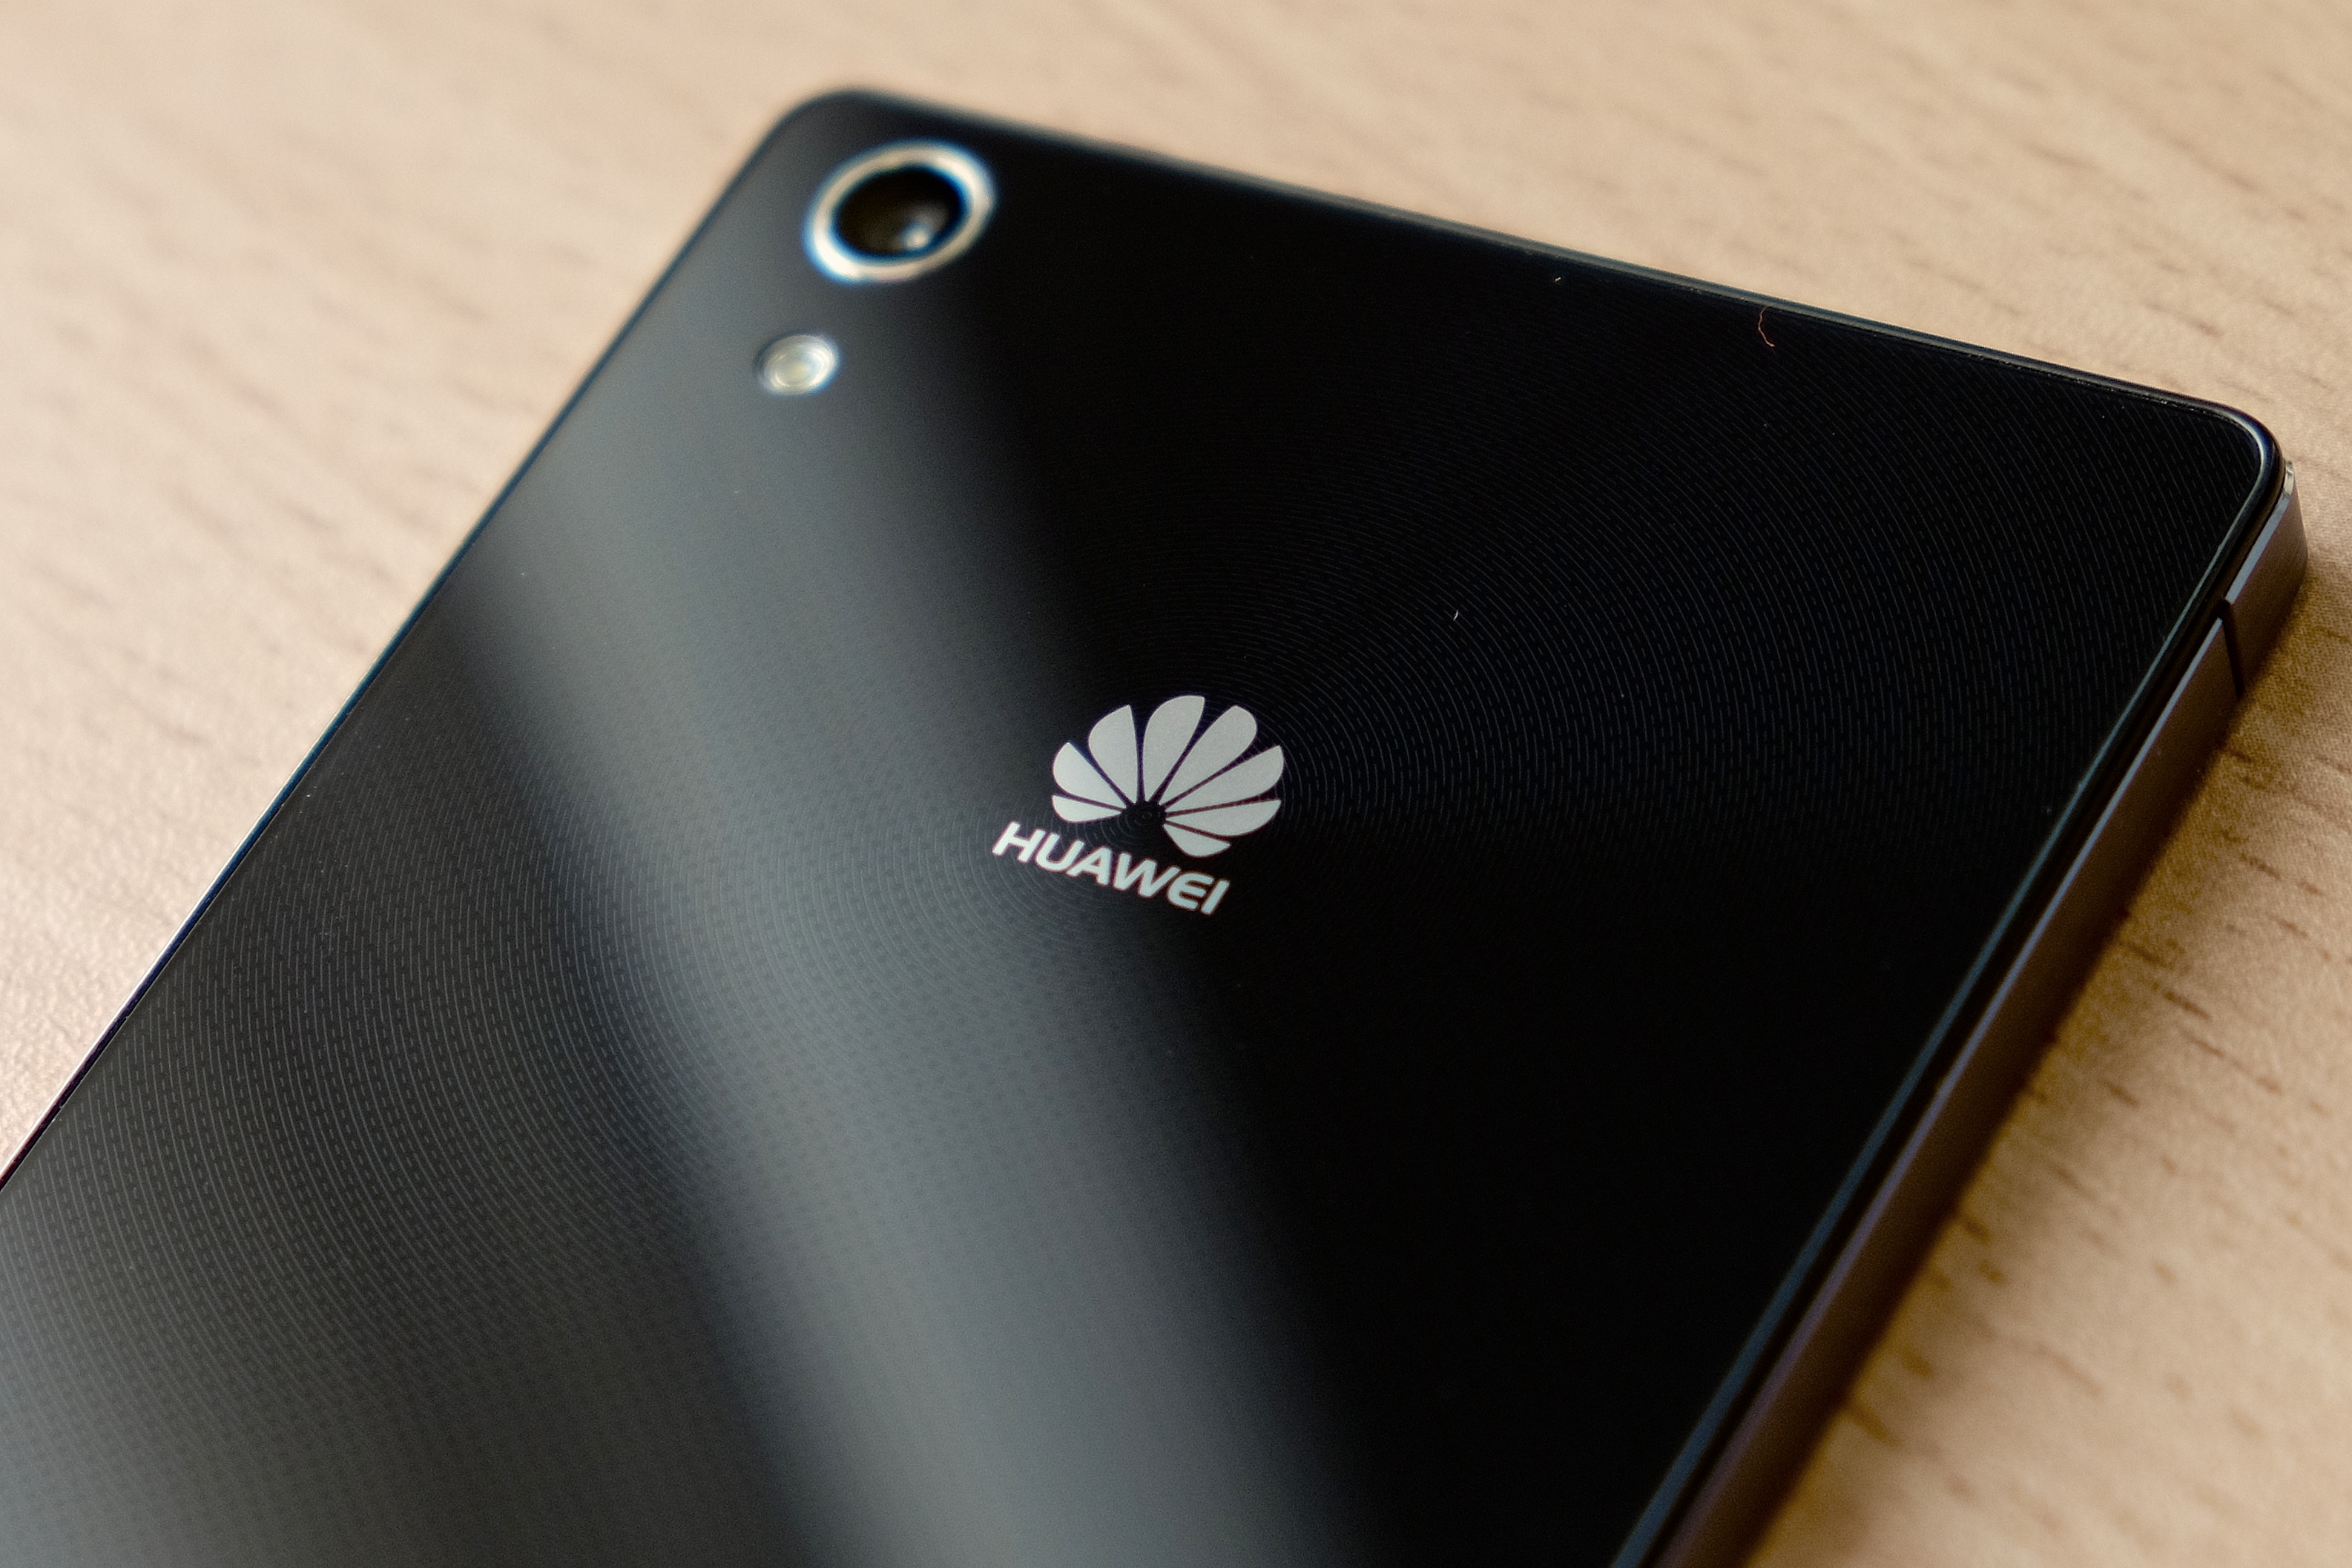 Huawei's 17th global R&D center will be established in Korea following the U.S., England, and India(Image: Kārlis Dambrāns/Flicker)